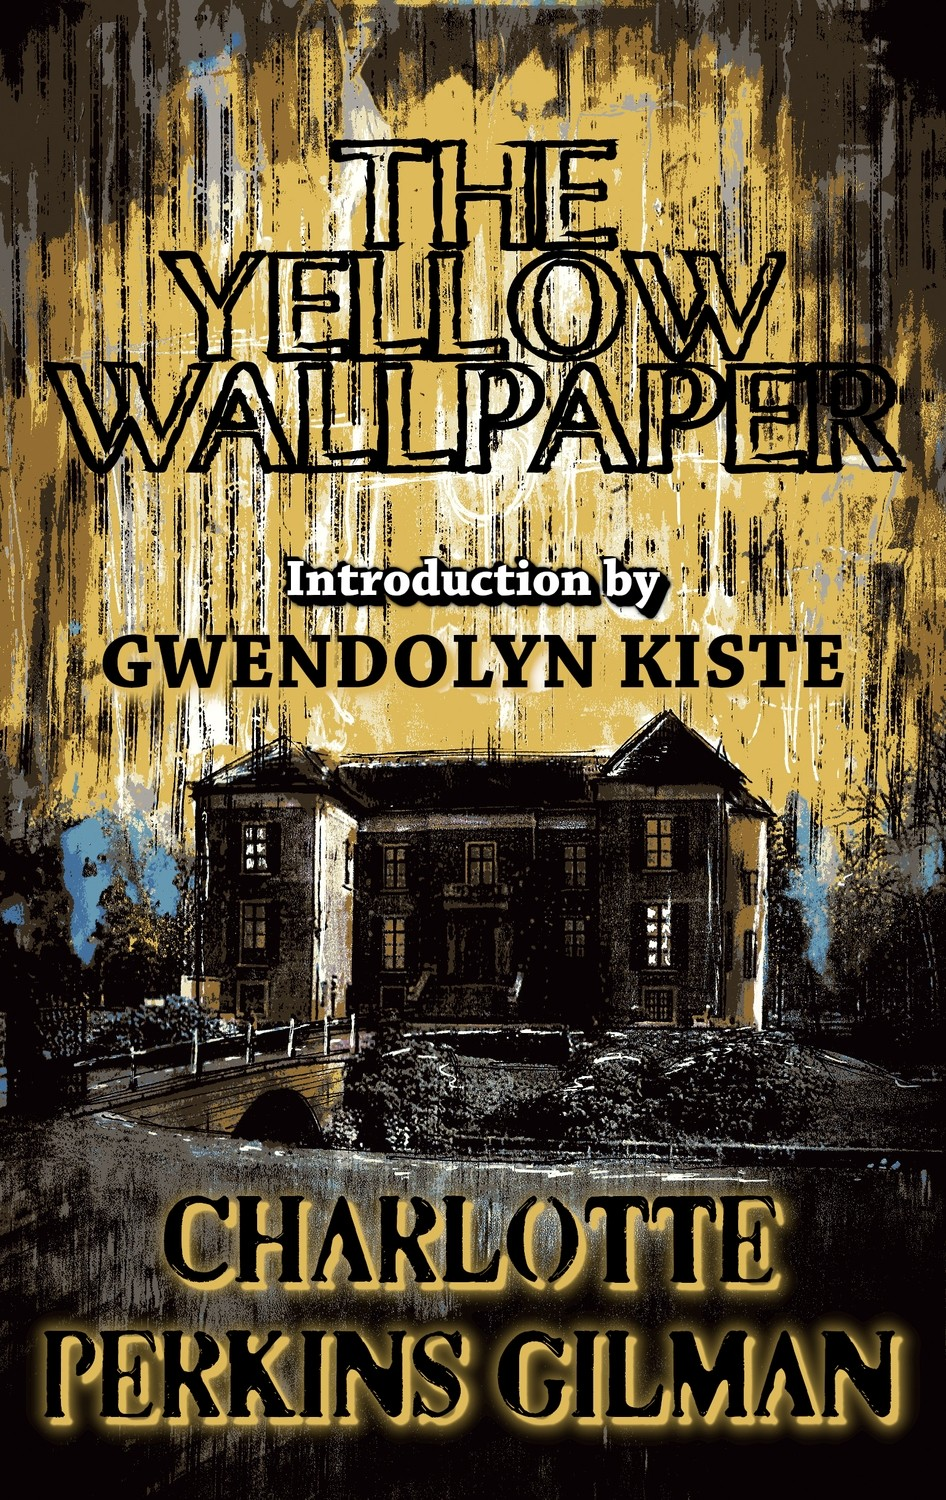 The Yellow Wallpaper by Charlotte Perkins Gilman (Classic Chapbook #1, introduction by Gwendolyn Kiste, Pre-order)